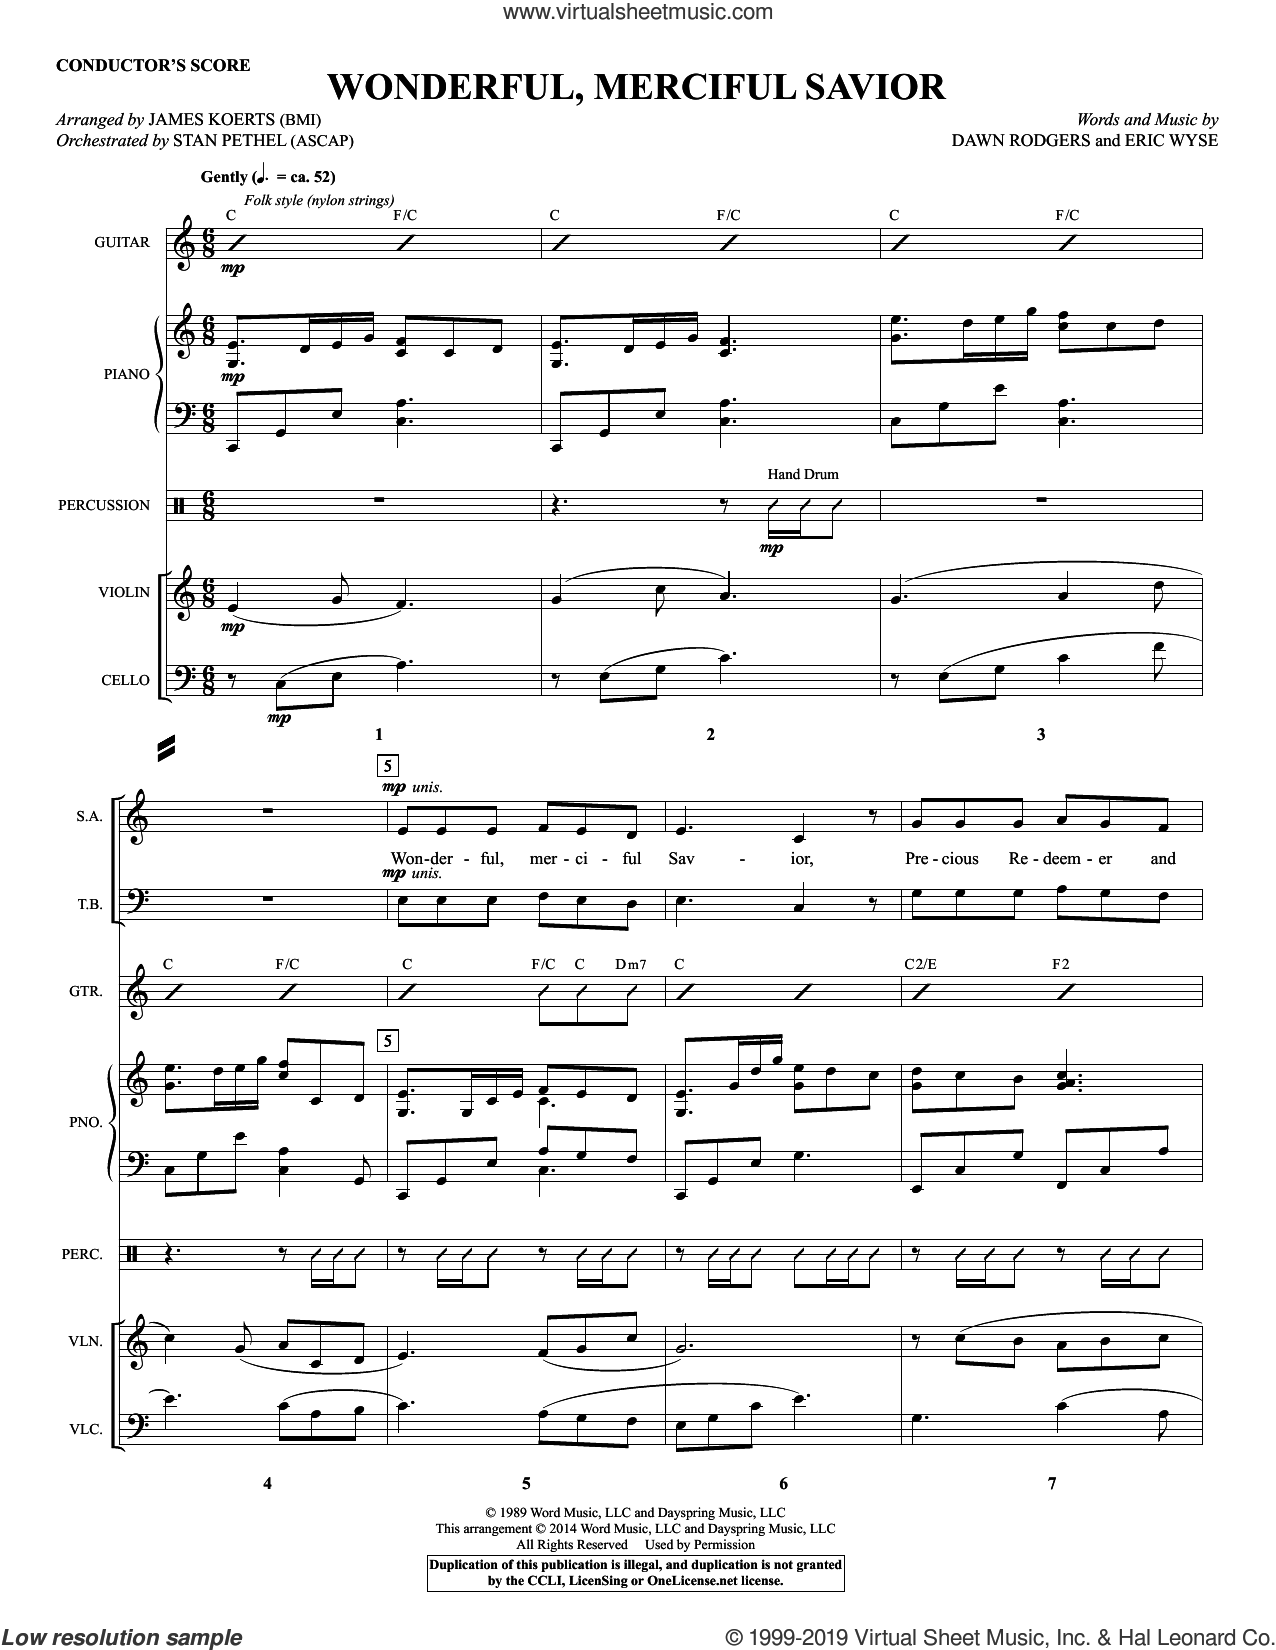 Wonderful, Merciful Savior (COMPLETE) sheet music for orchestra/band by James Koerts, Dawn Rodgers and Eric Wyse, intermediate skill level